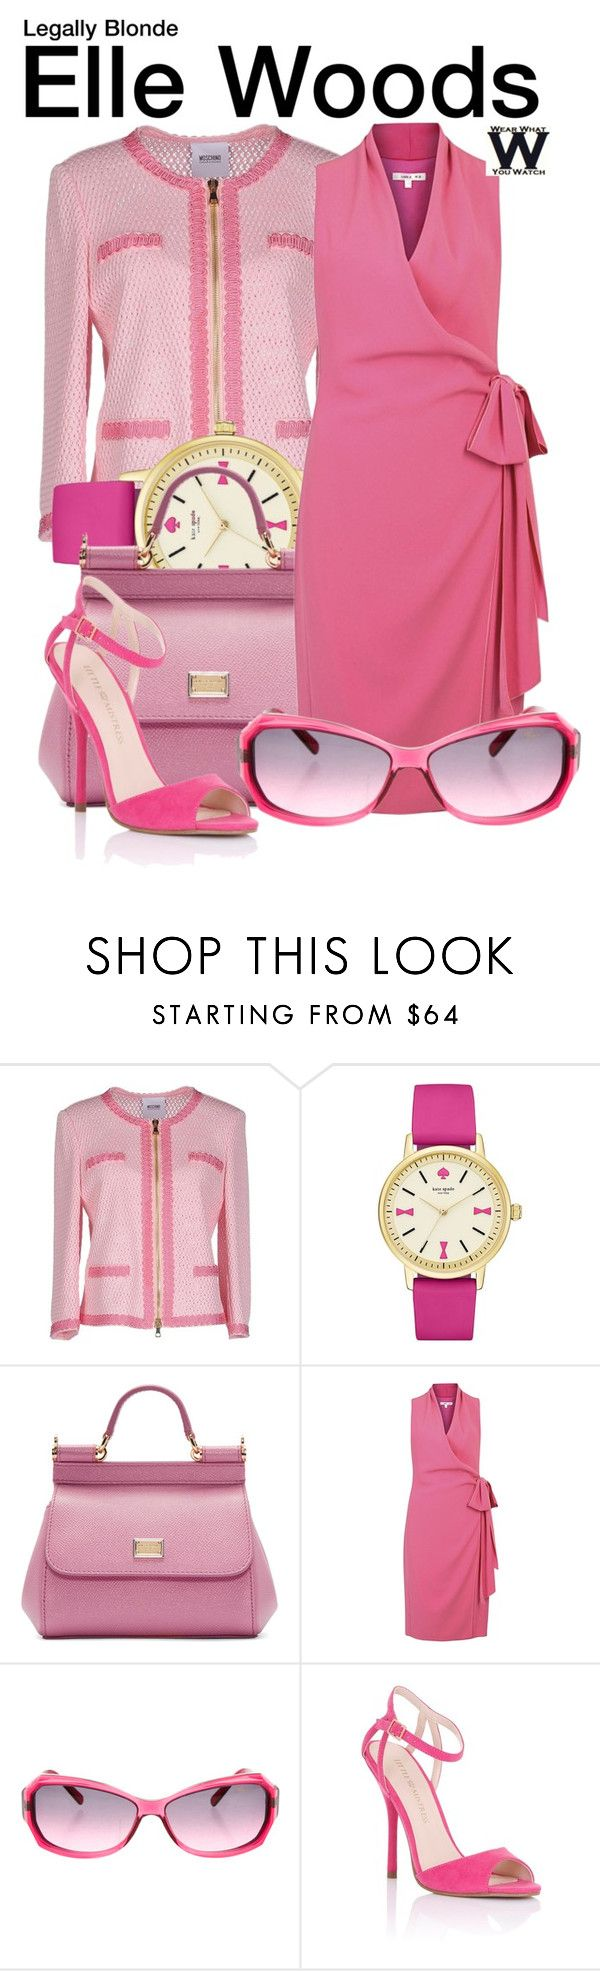 """Legally Blonde"" by wearwhatyouwatch ❤ liked on Polyvore featuring Moschino Cheap & Chic, Kate Spade, Dolce&Gabbana, Paule Ka, Chopard, Lipsy, wearwhatyouwatch and film"